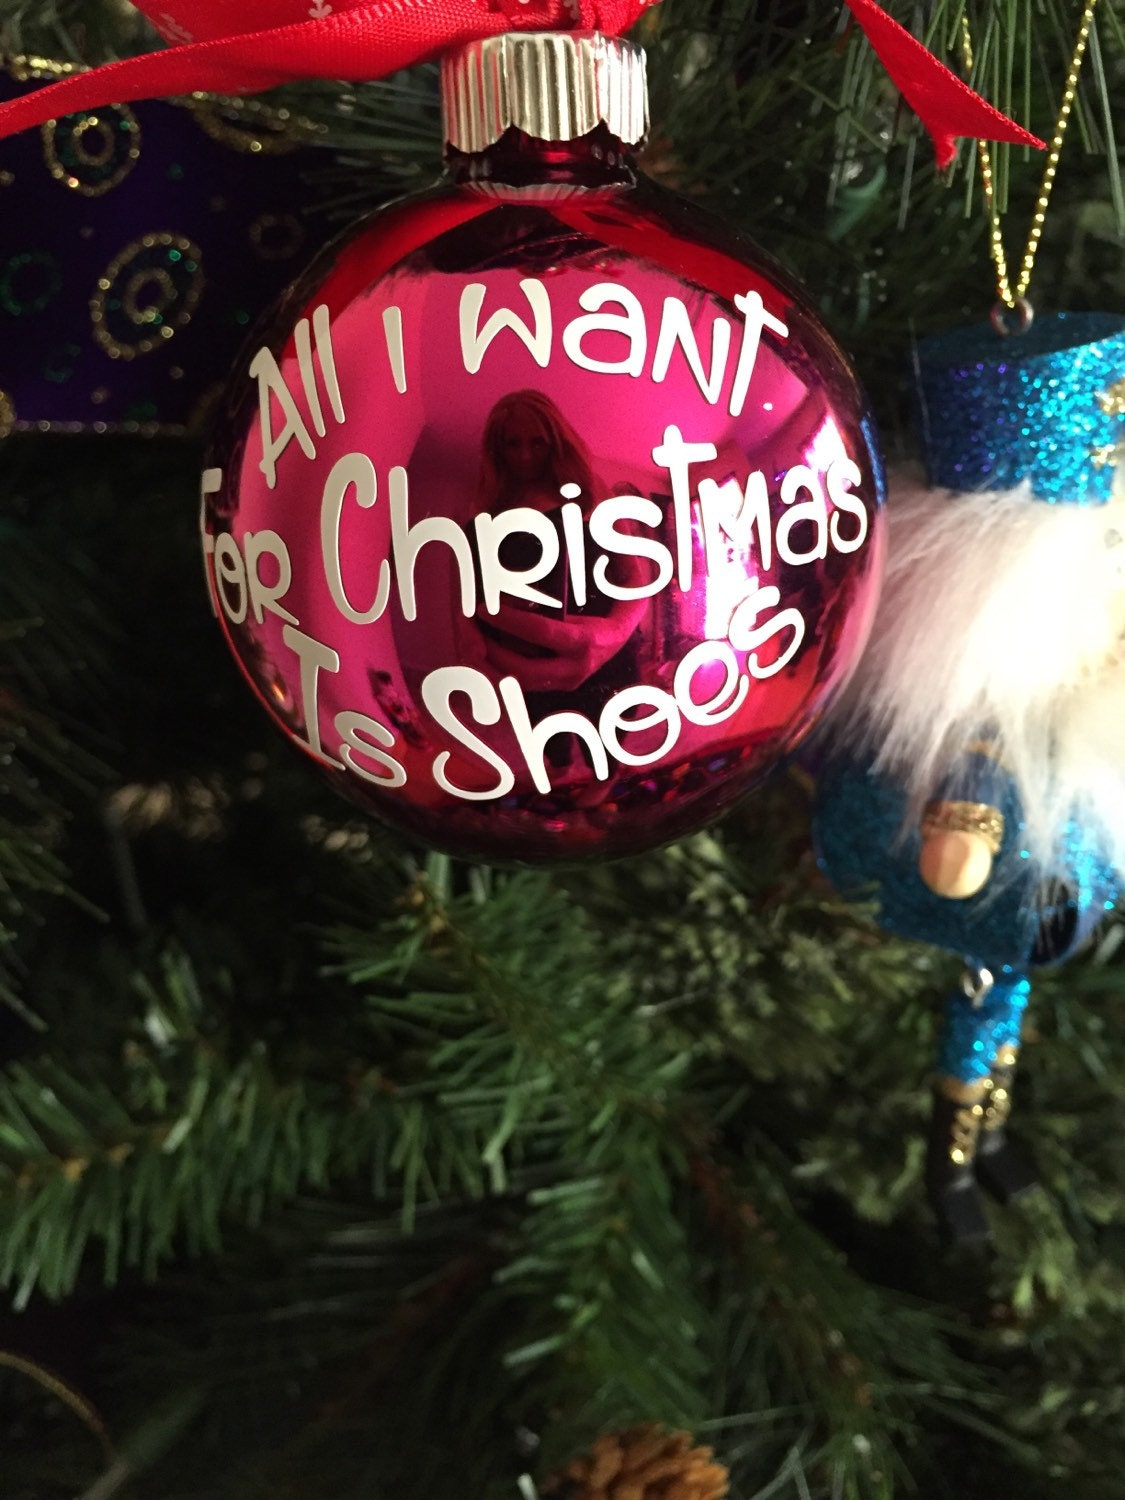 Glass ornaments, ornament, shoes, diva ornament, All i want for ...